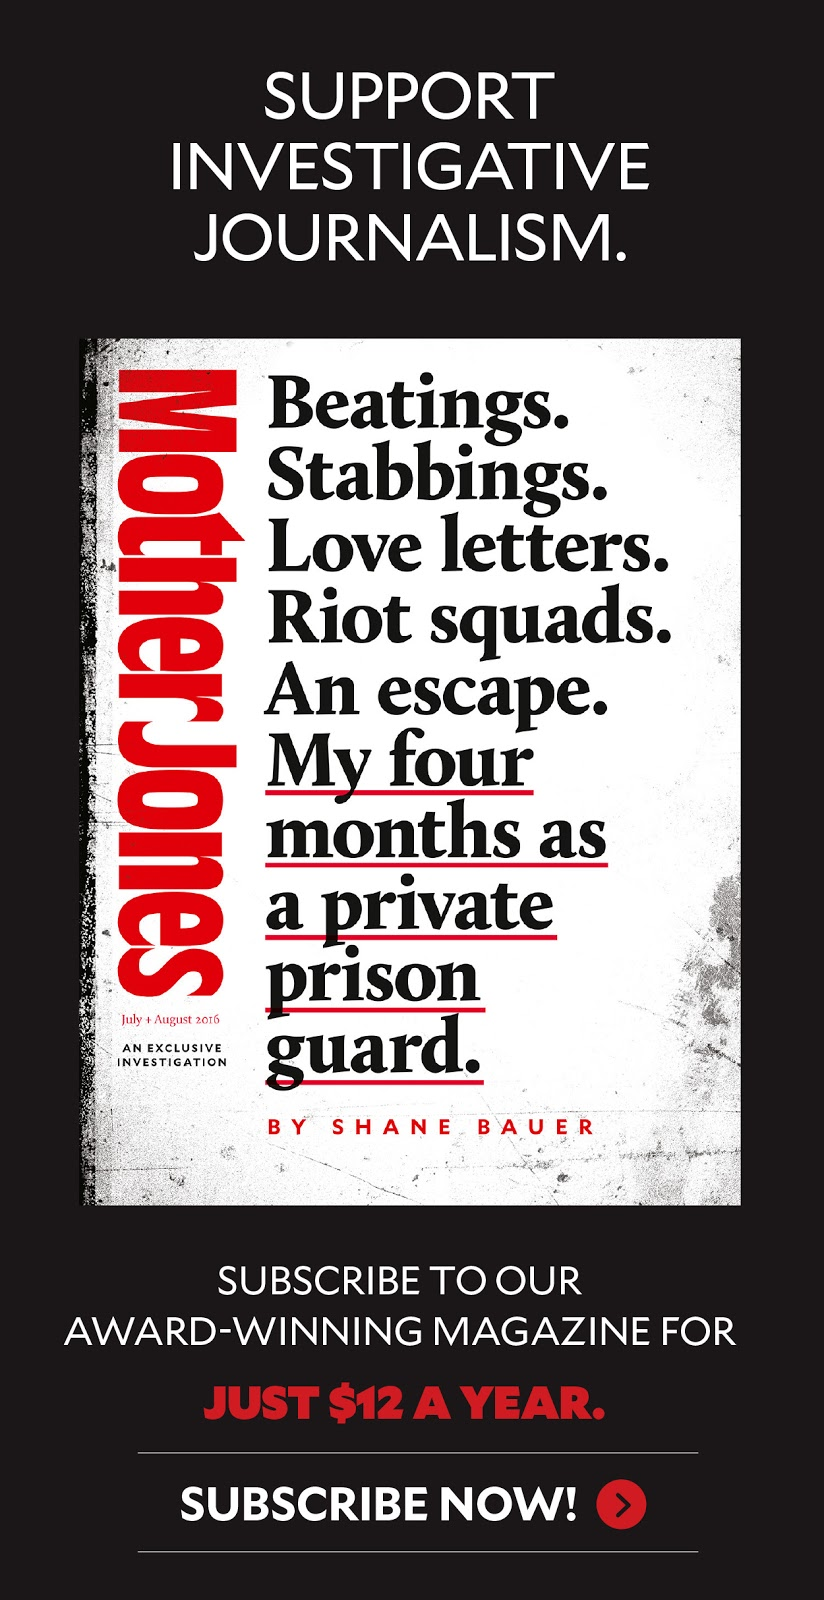 My Four Months As A Private Prison Guard Mother Jones Your Trailer May Not Have Been Originally Wired The Way Depicted And Subscribe To Our Award Winning Magazine Today For Just 12